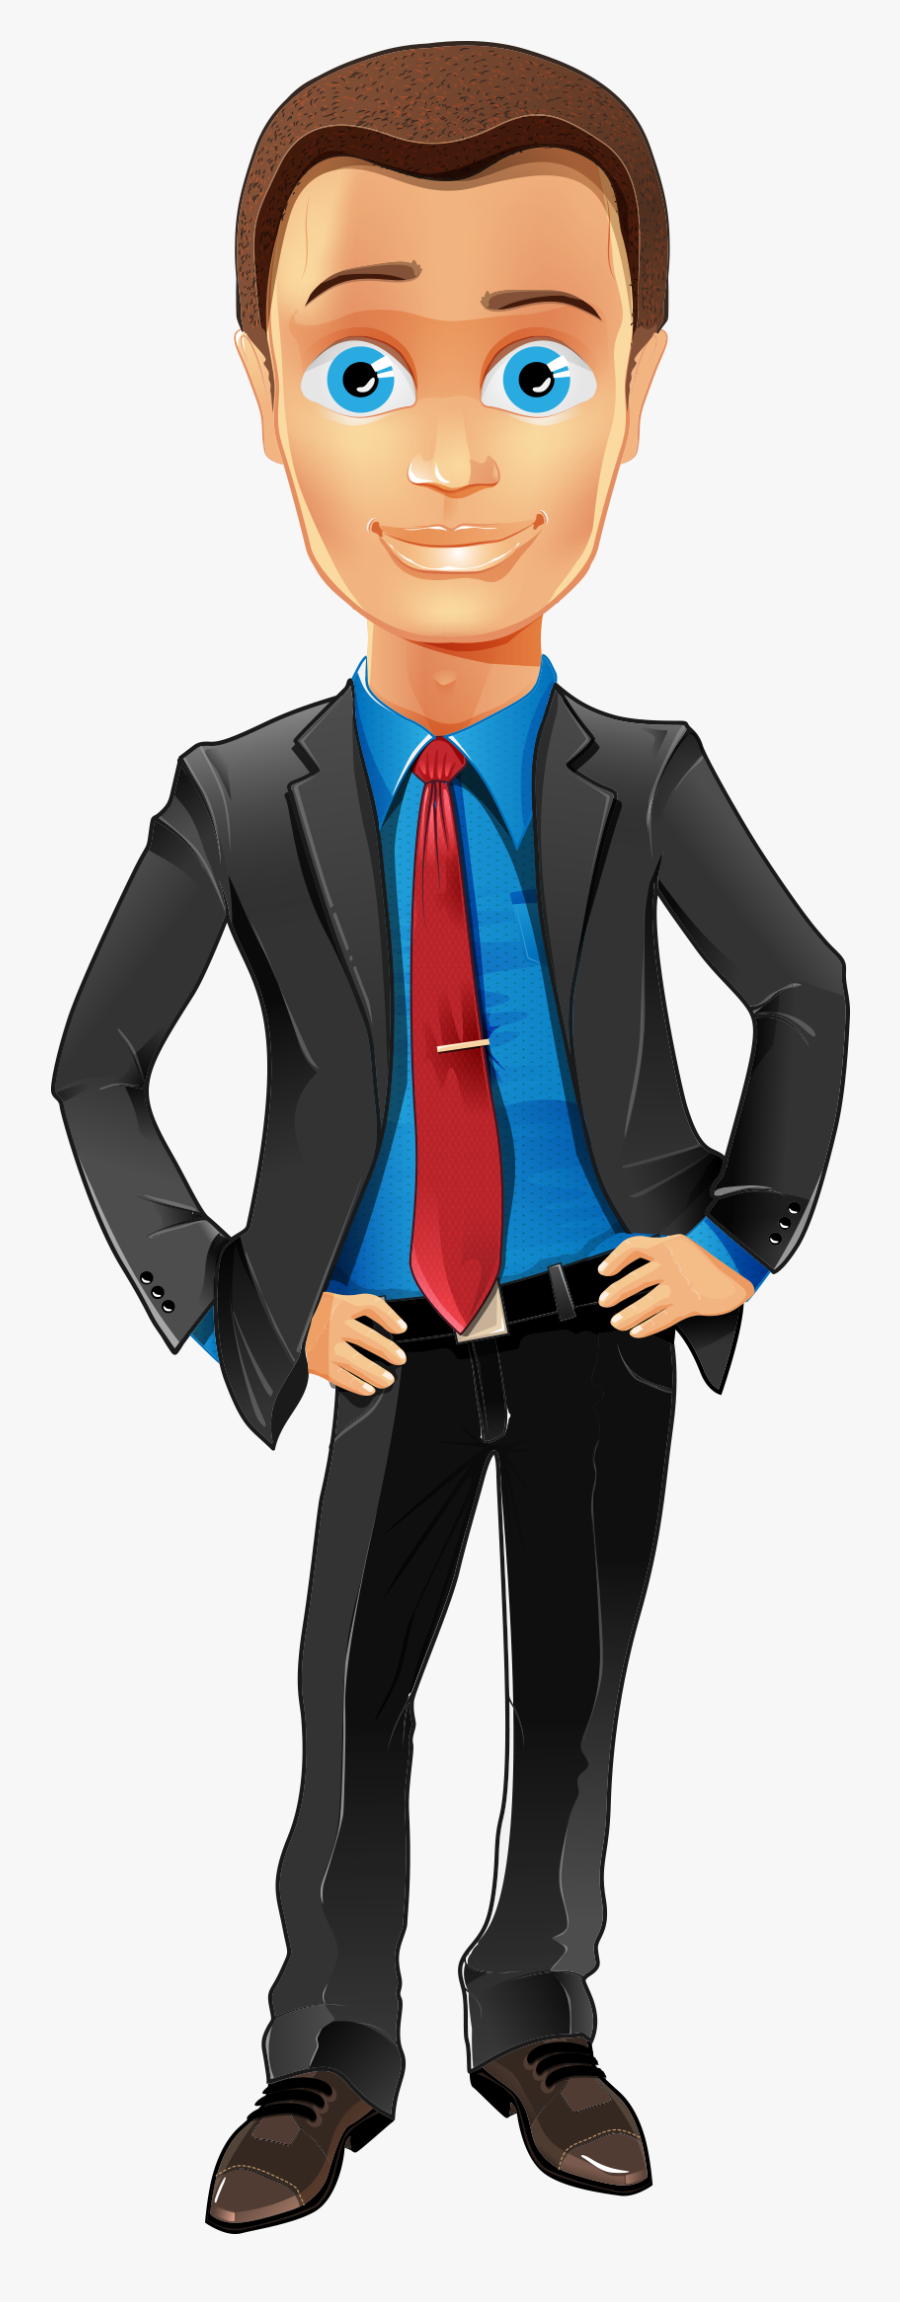 Clip Art Business Character Illustration People, Transparent Clipart